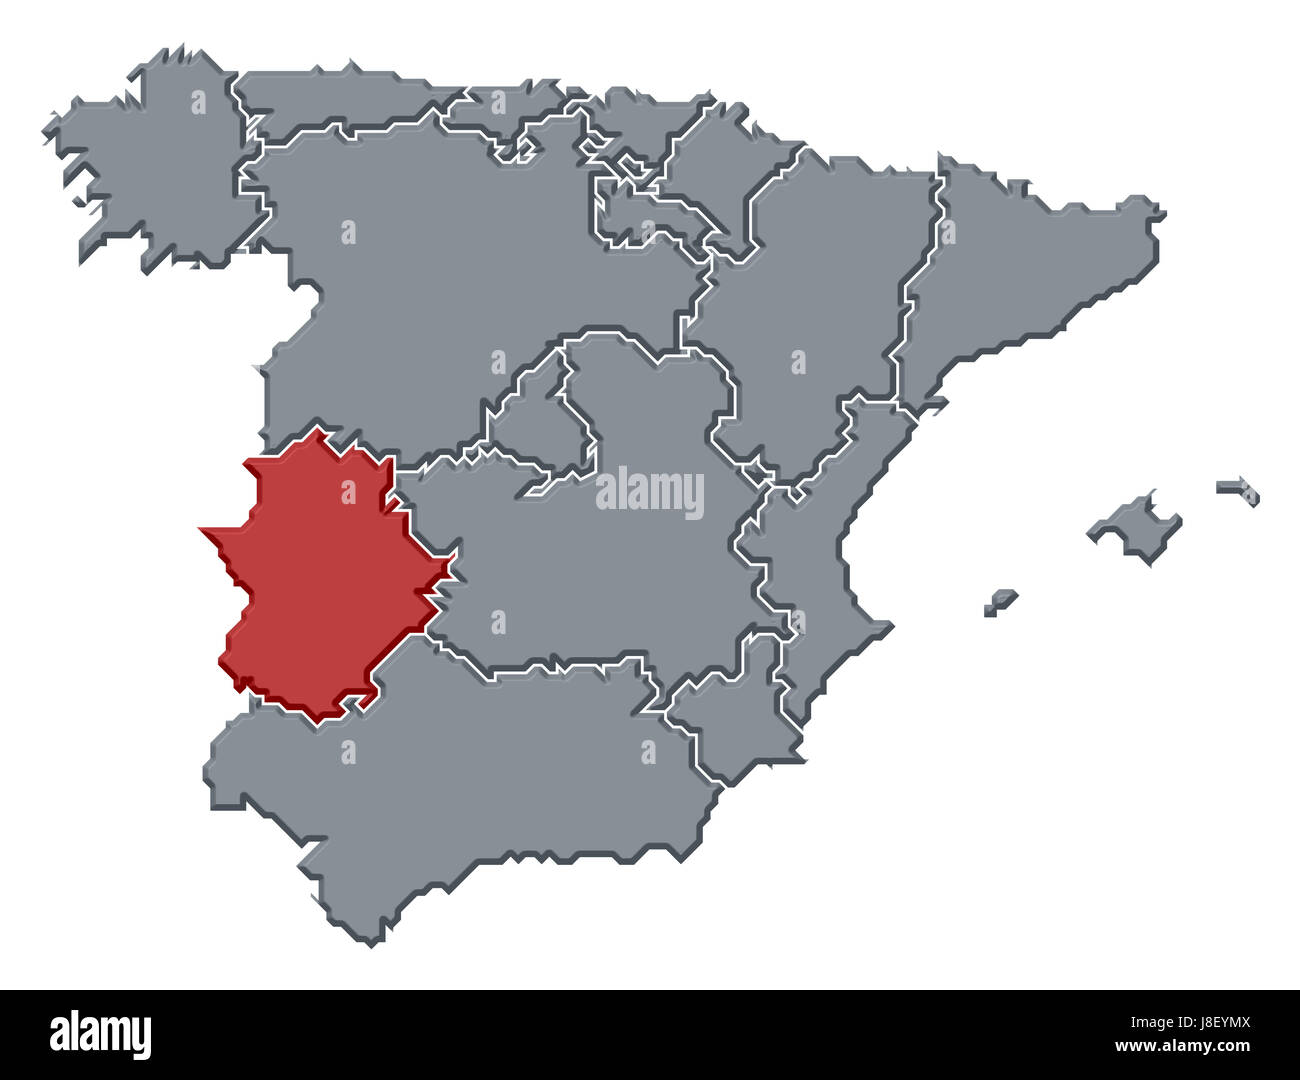 spain, map, atlas, map of the world, profile, symbolic, political ...